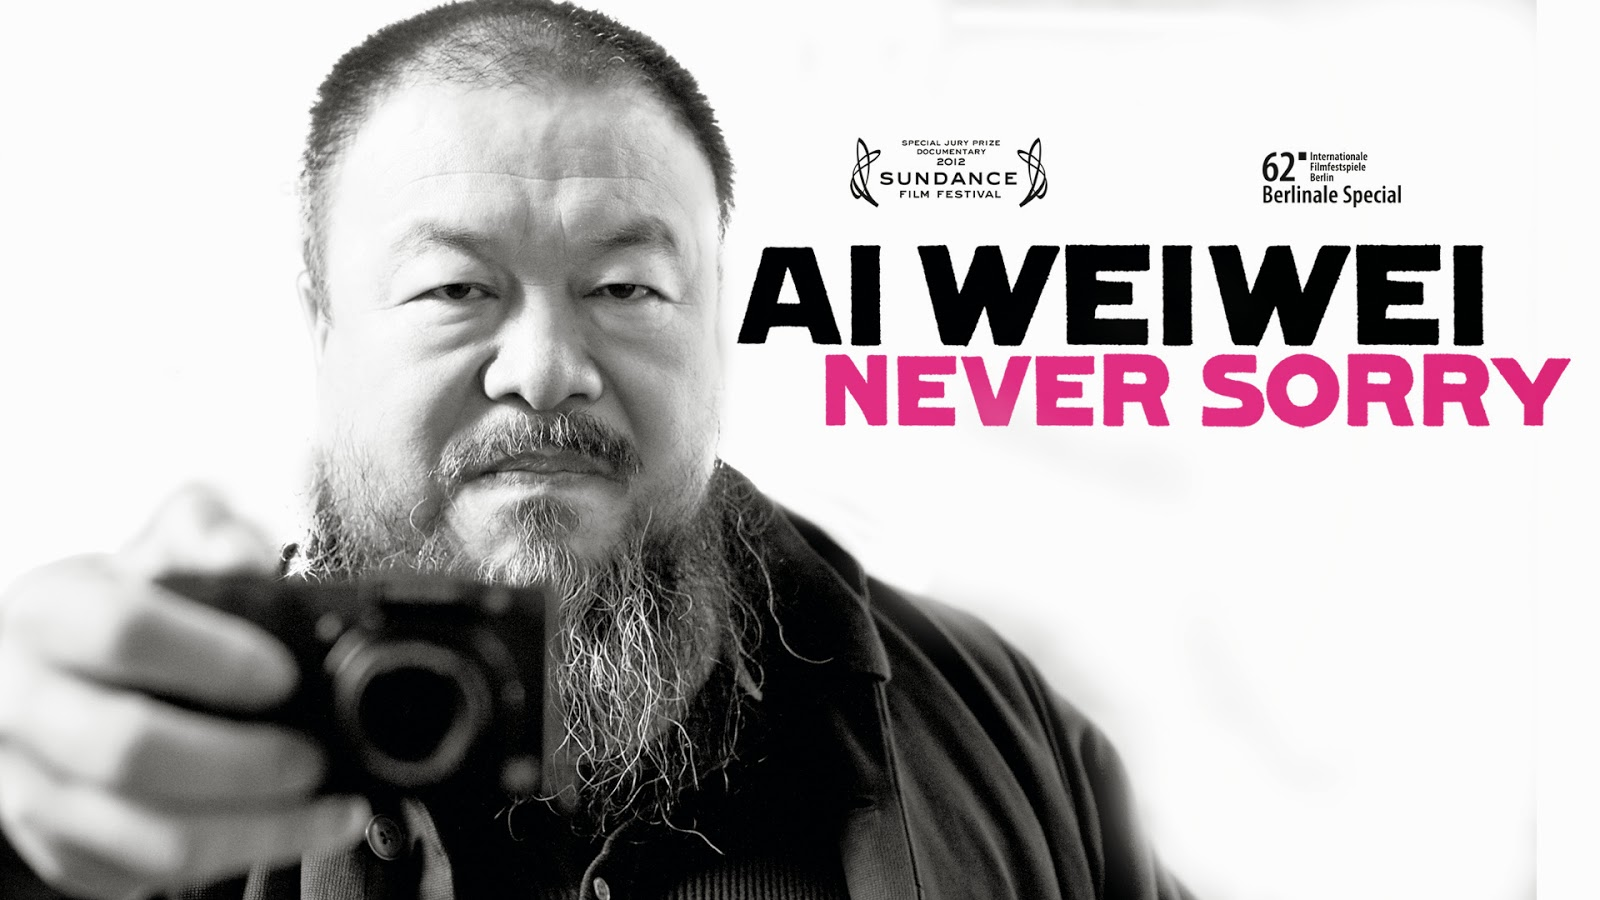 Ai Weiwei Never Sorry Tells The Story Of Chinas Most Famous International Artist Ai Weiwei Is The Countrys Most Outspoken Domestic Critic